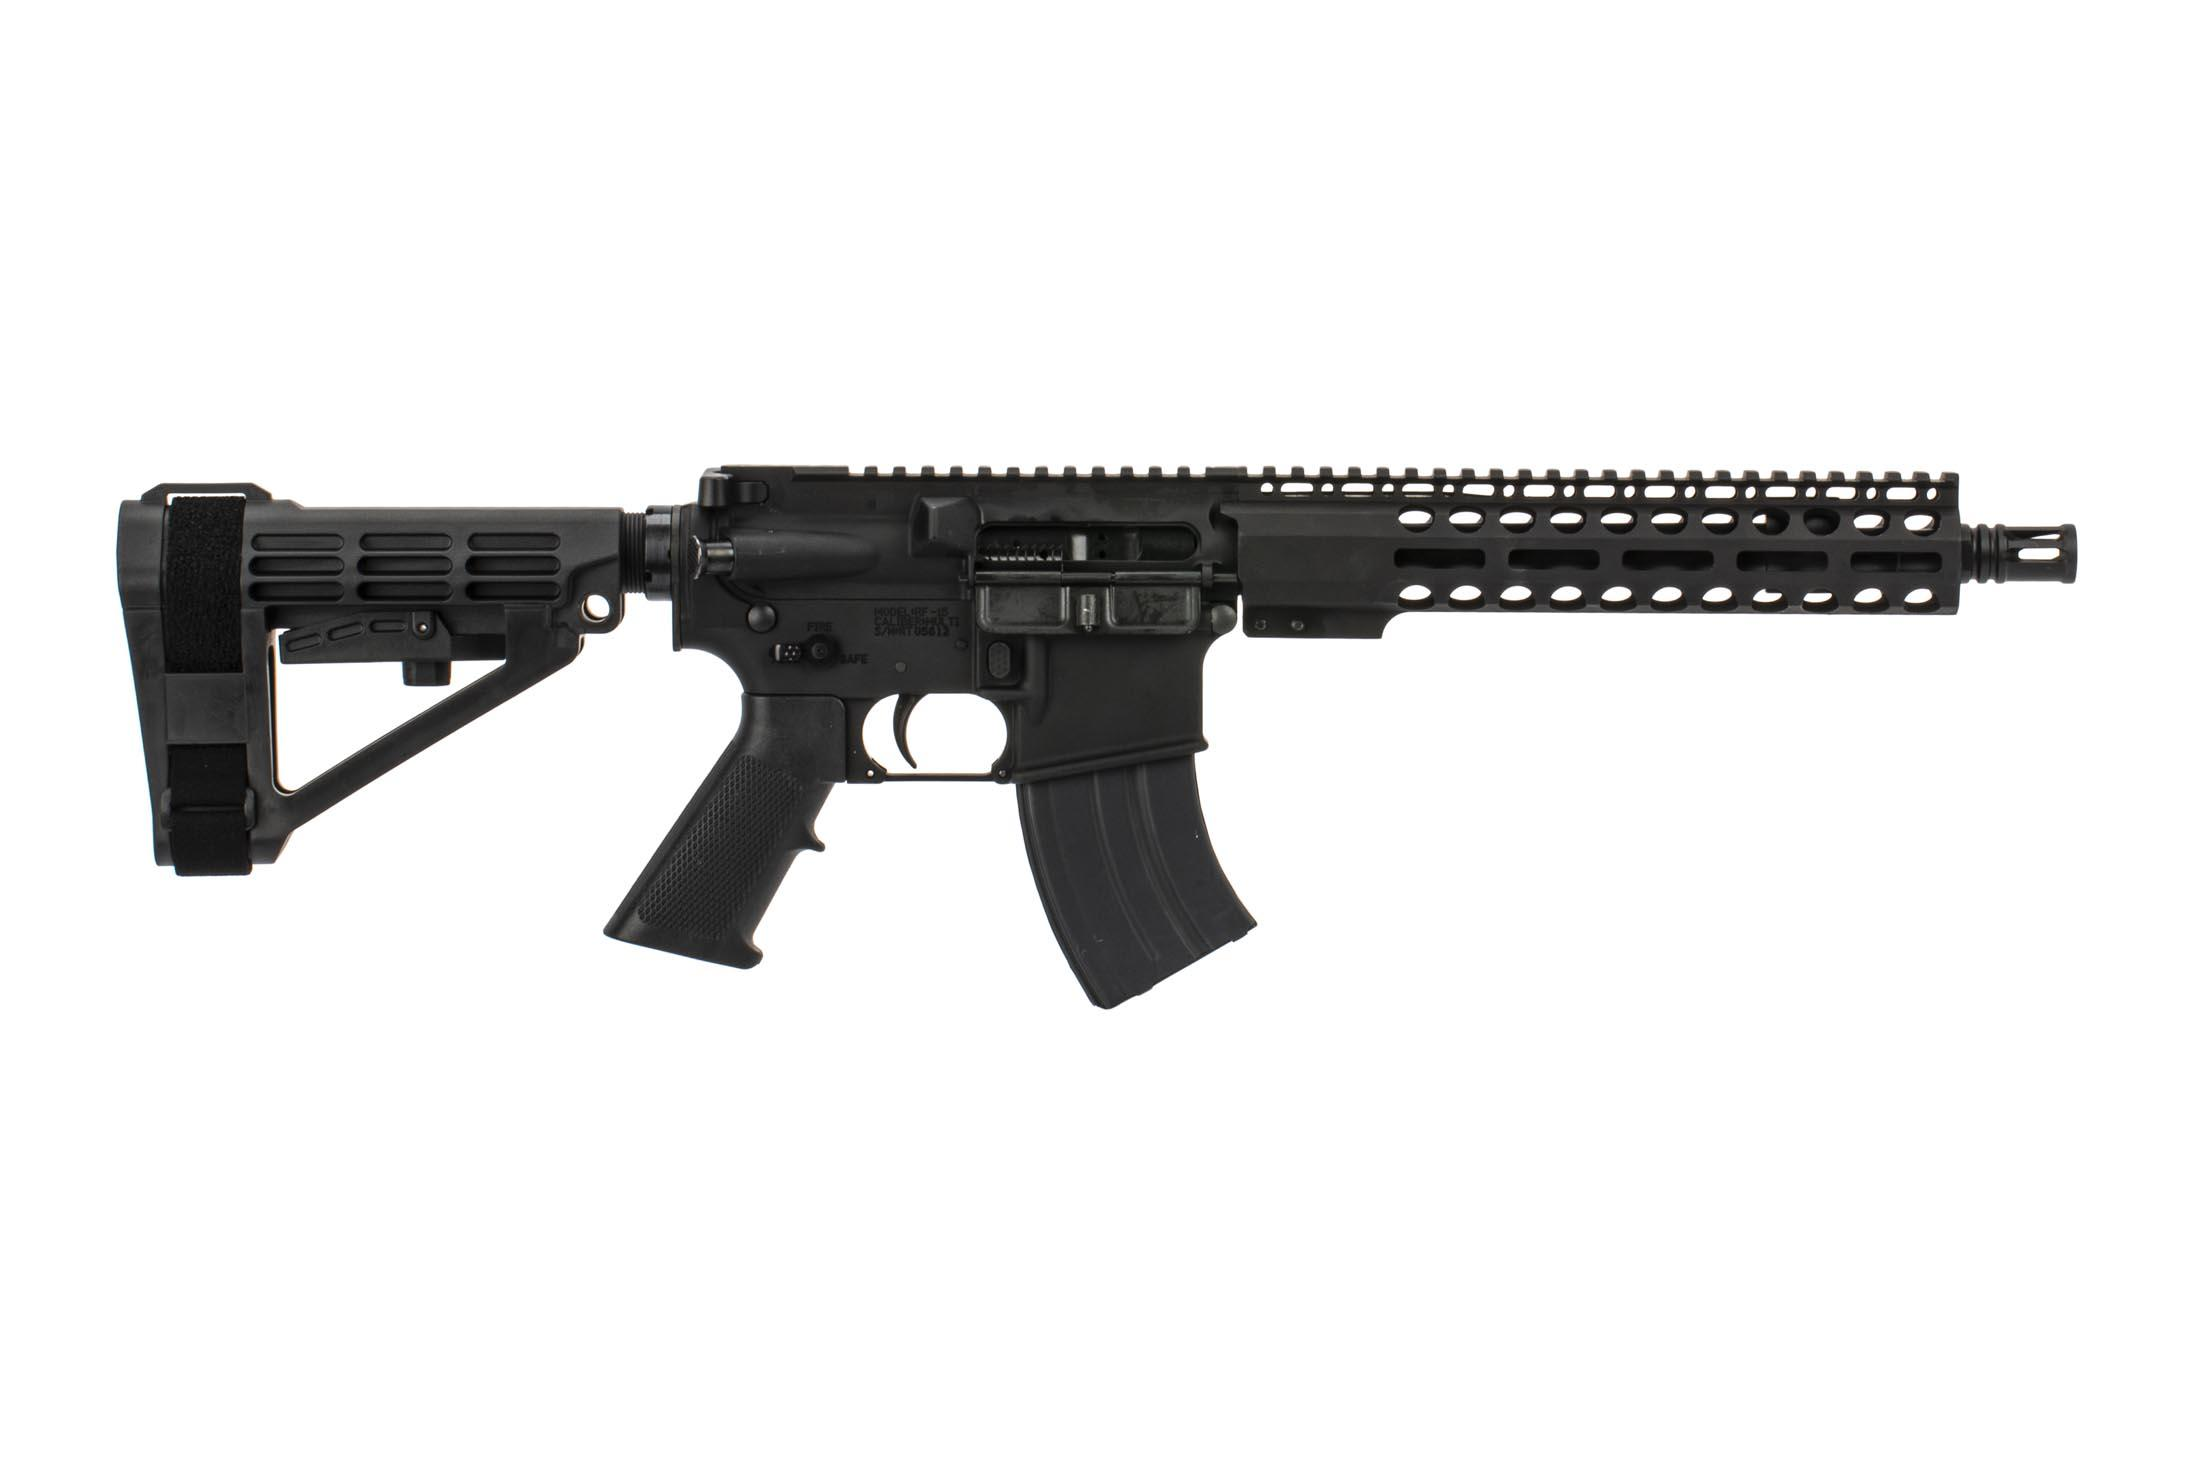 The Radical Firearms 7.62x39 Pistol features the Primary Arms Exclusive M-LOK handguard